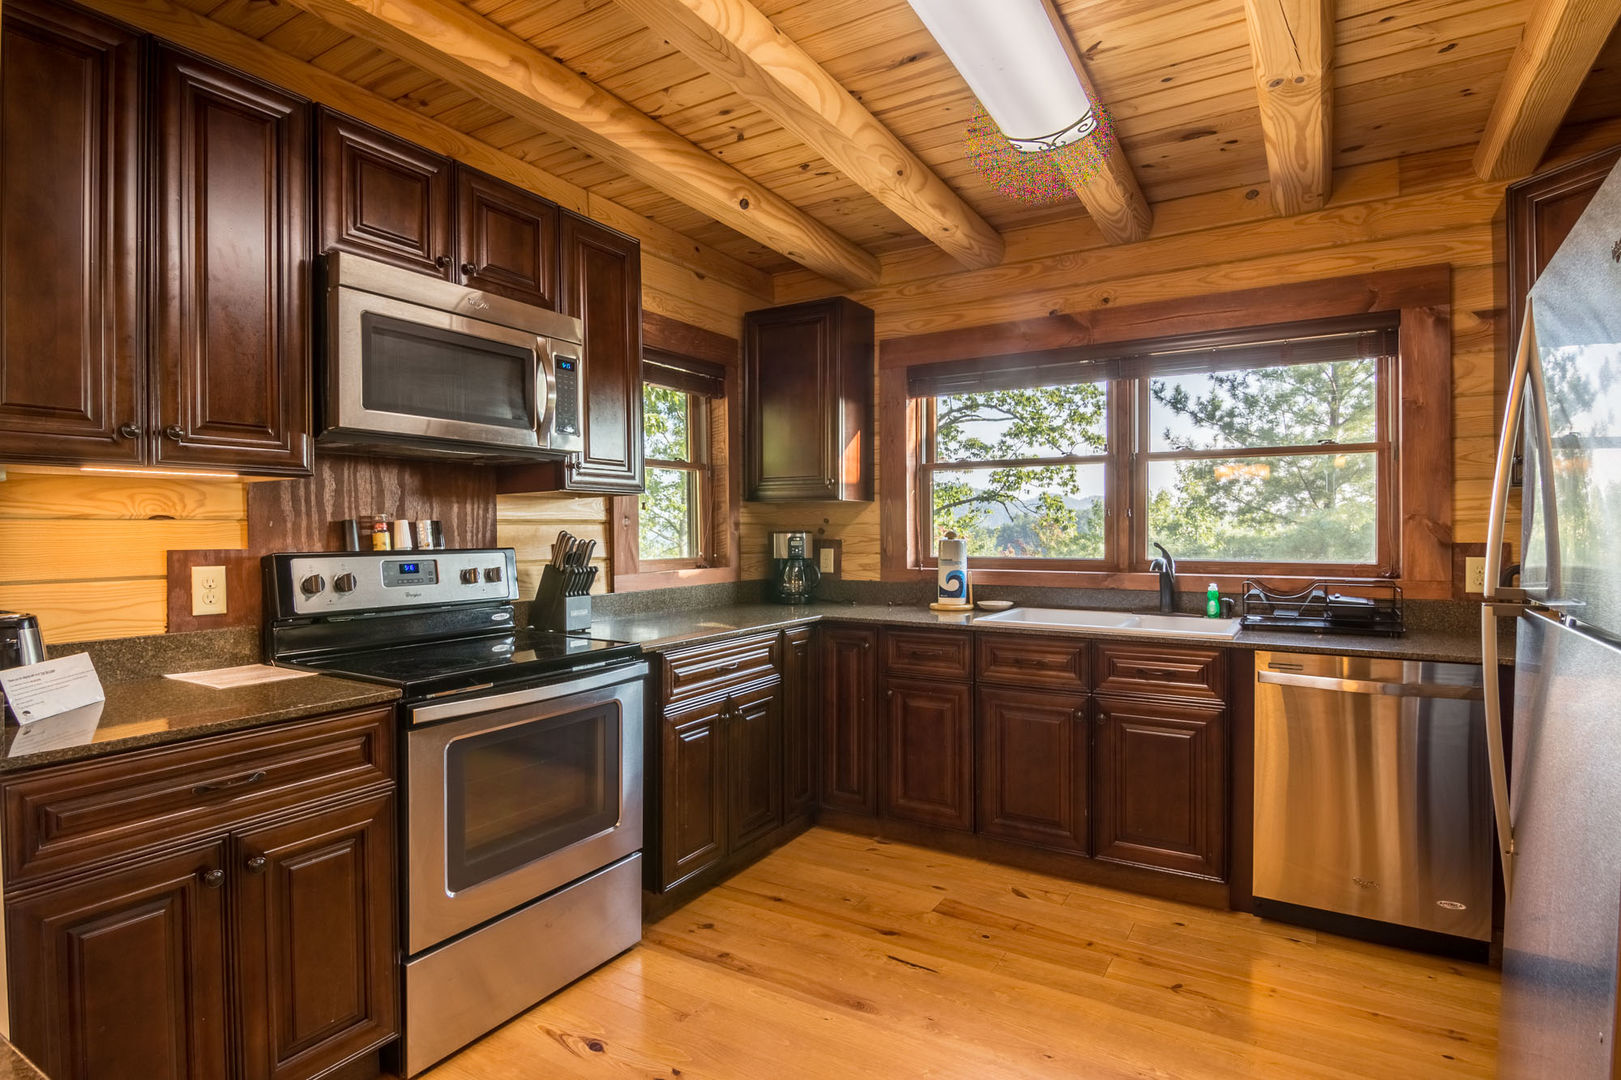 The kitchen has plenty of room and stainless steel appliances